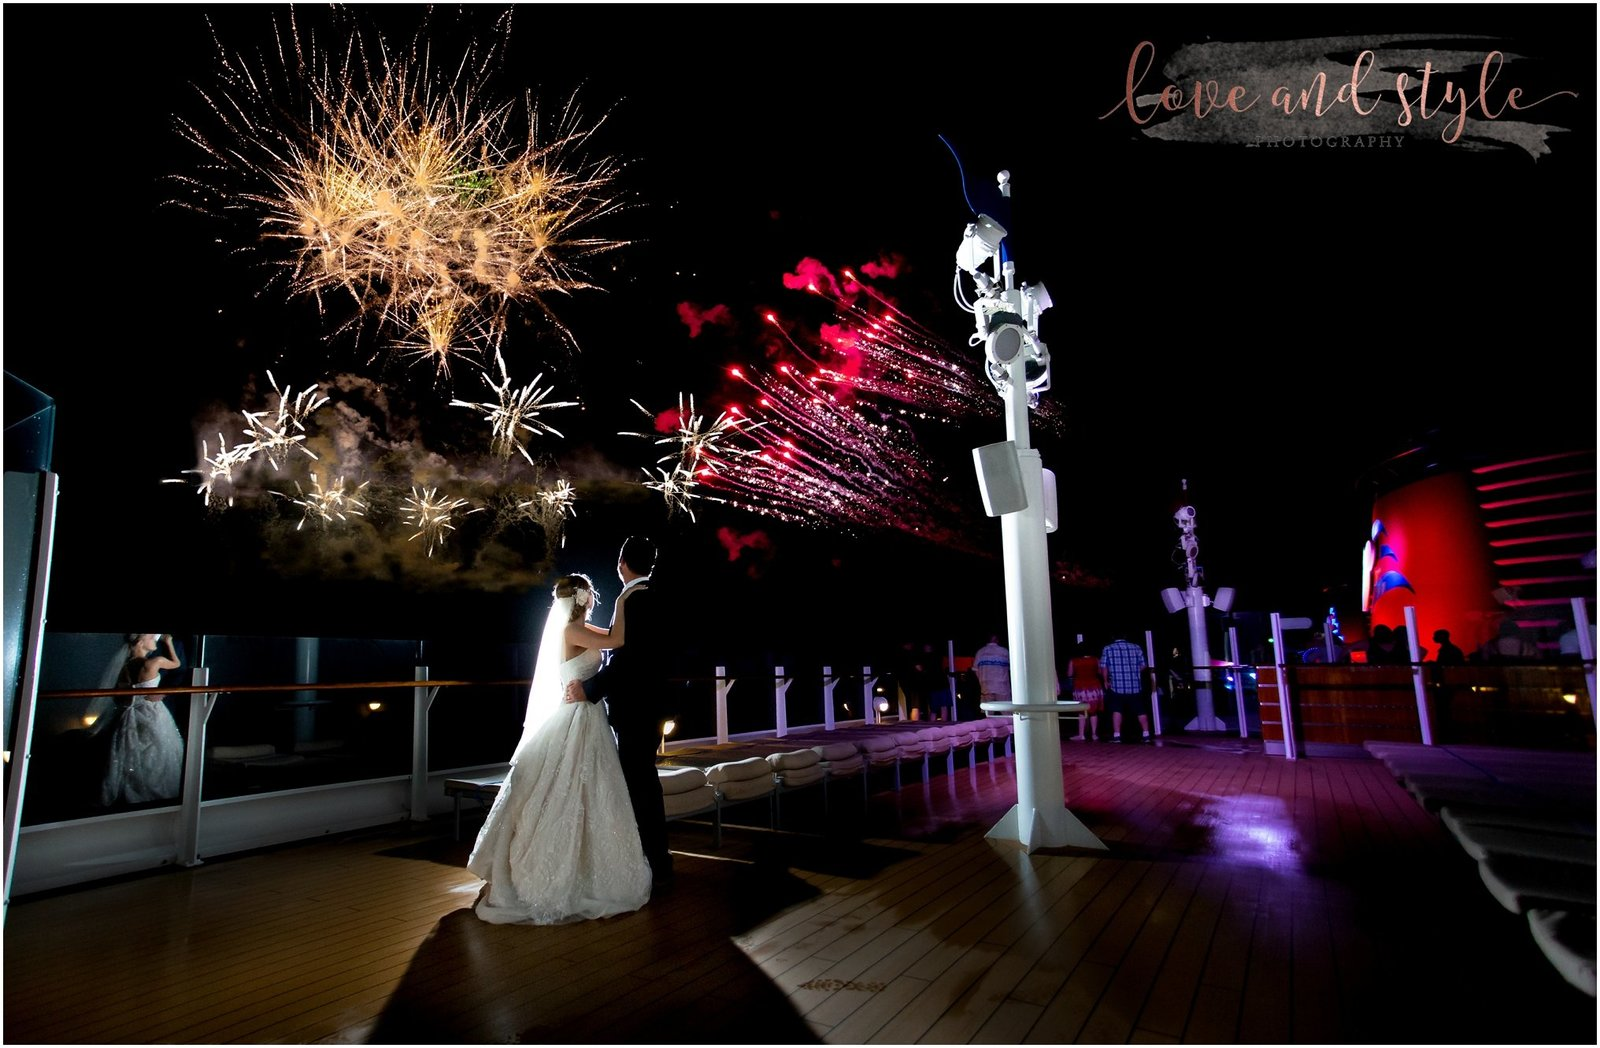 Disney Dream Cruise Wedding Photography bride and groom portrait on the deck with the fireworks in the sky